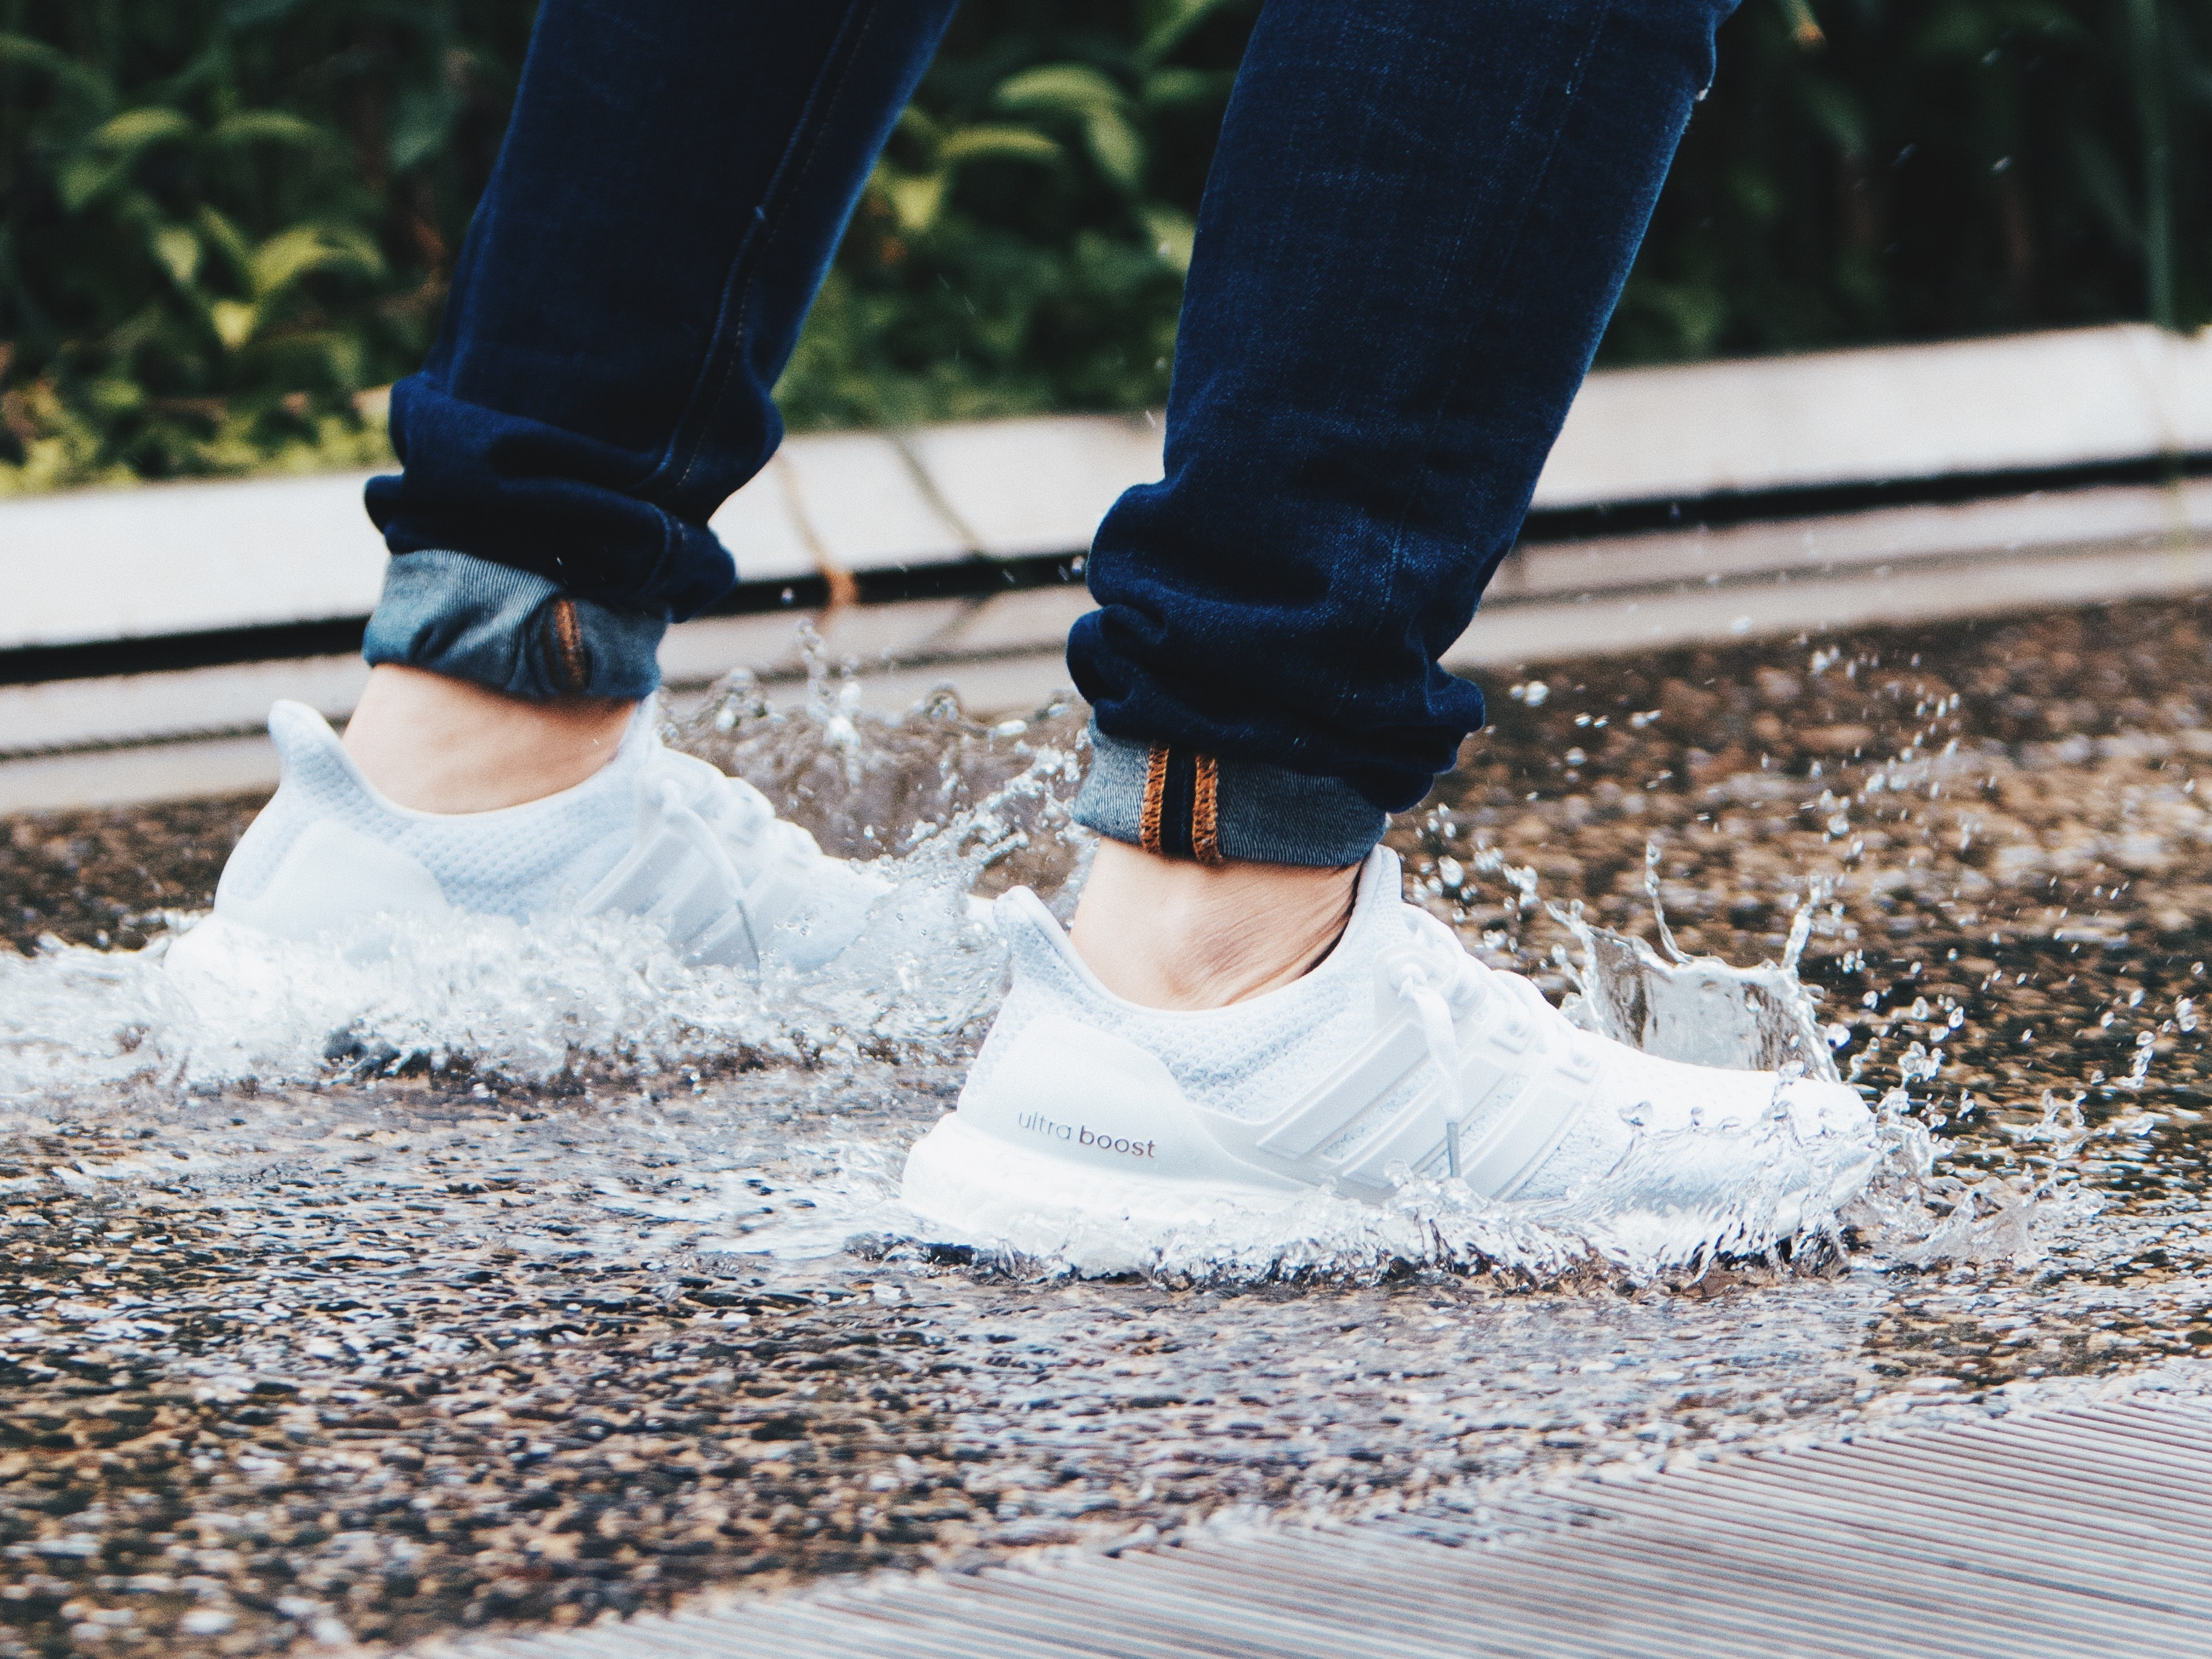 person wearing pair of gray adidas UltraBOOST low-top sneakers stepped on pool of water